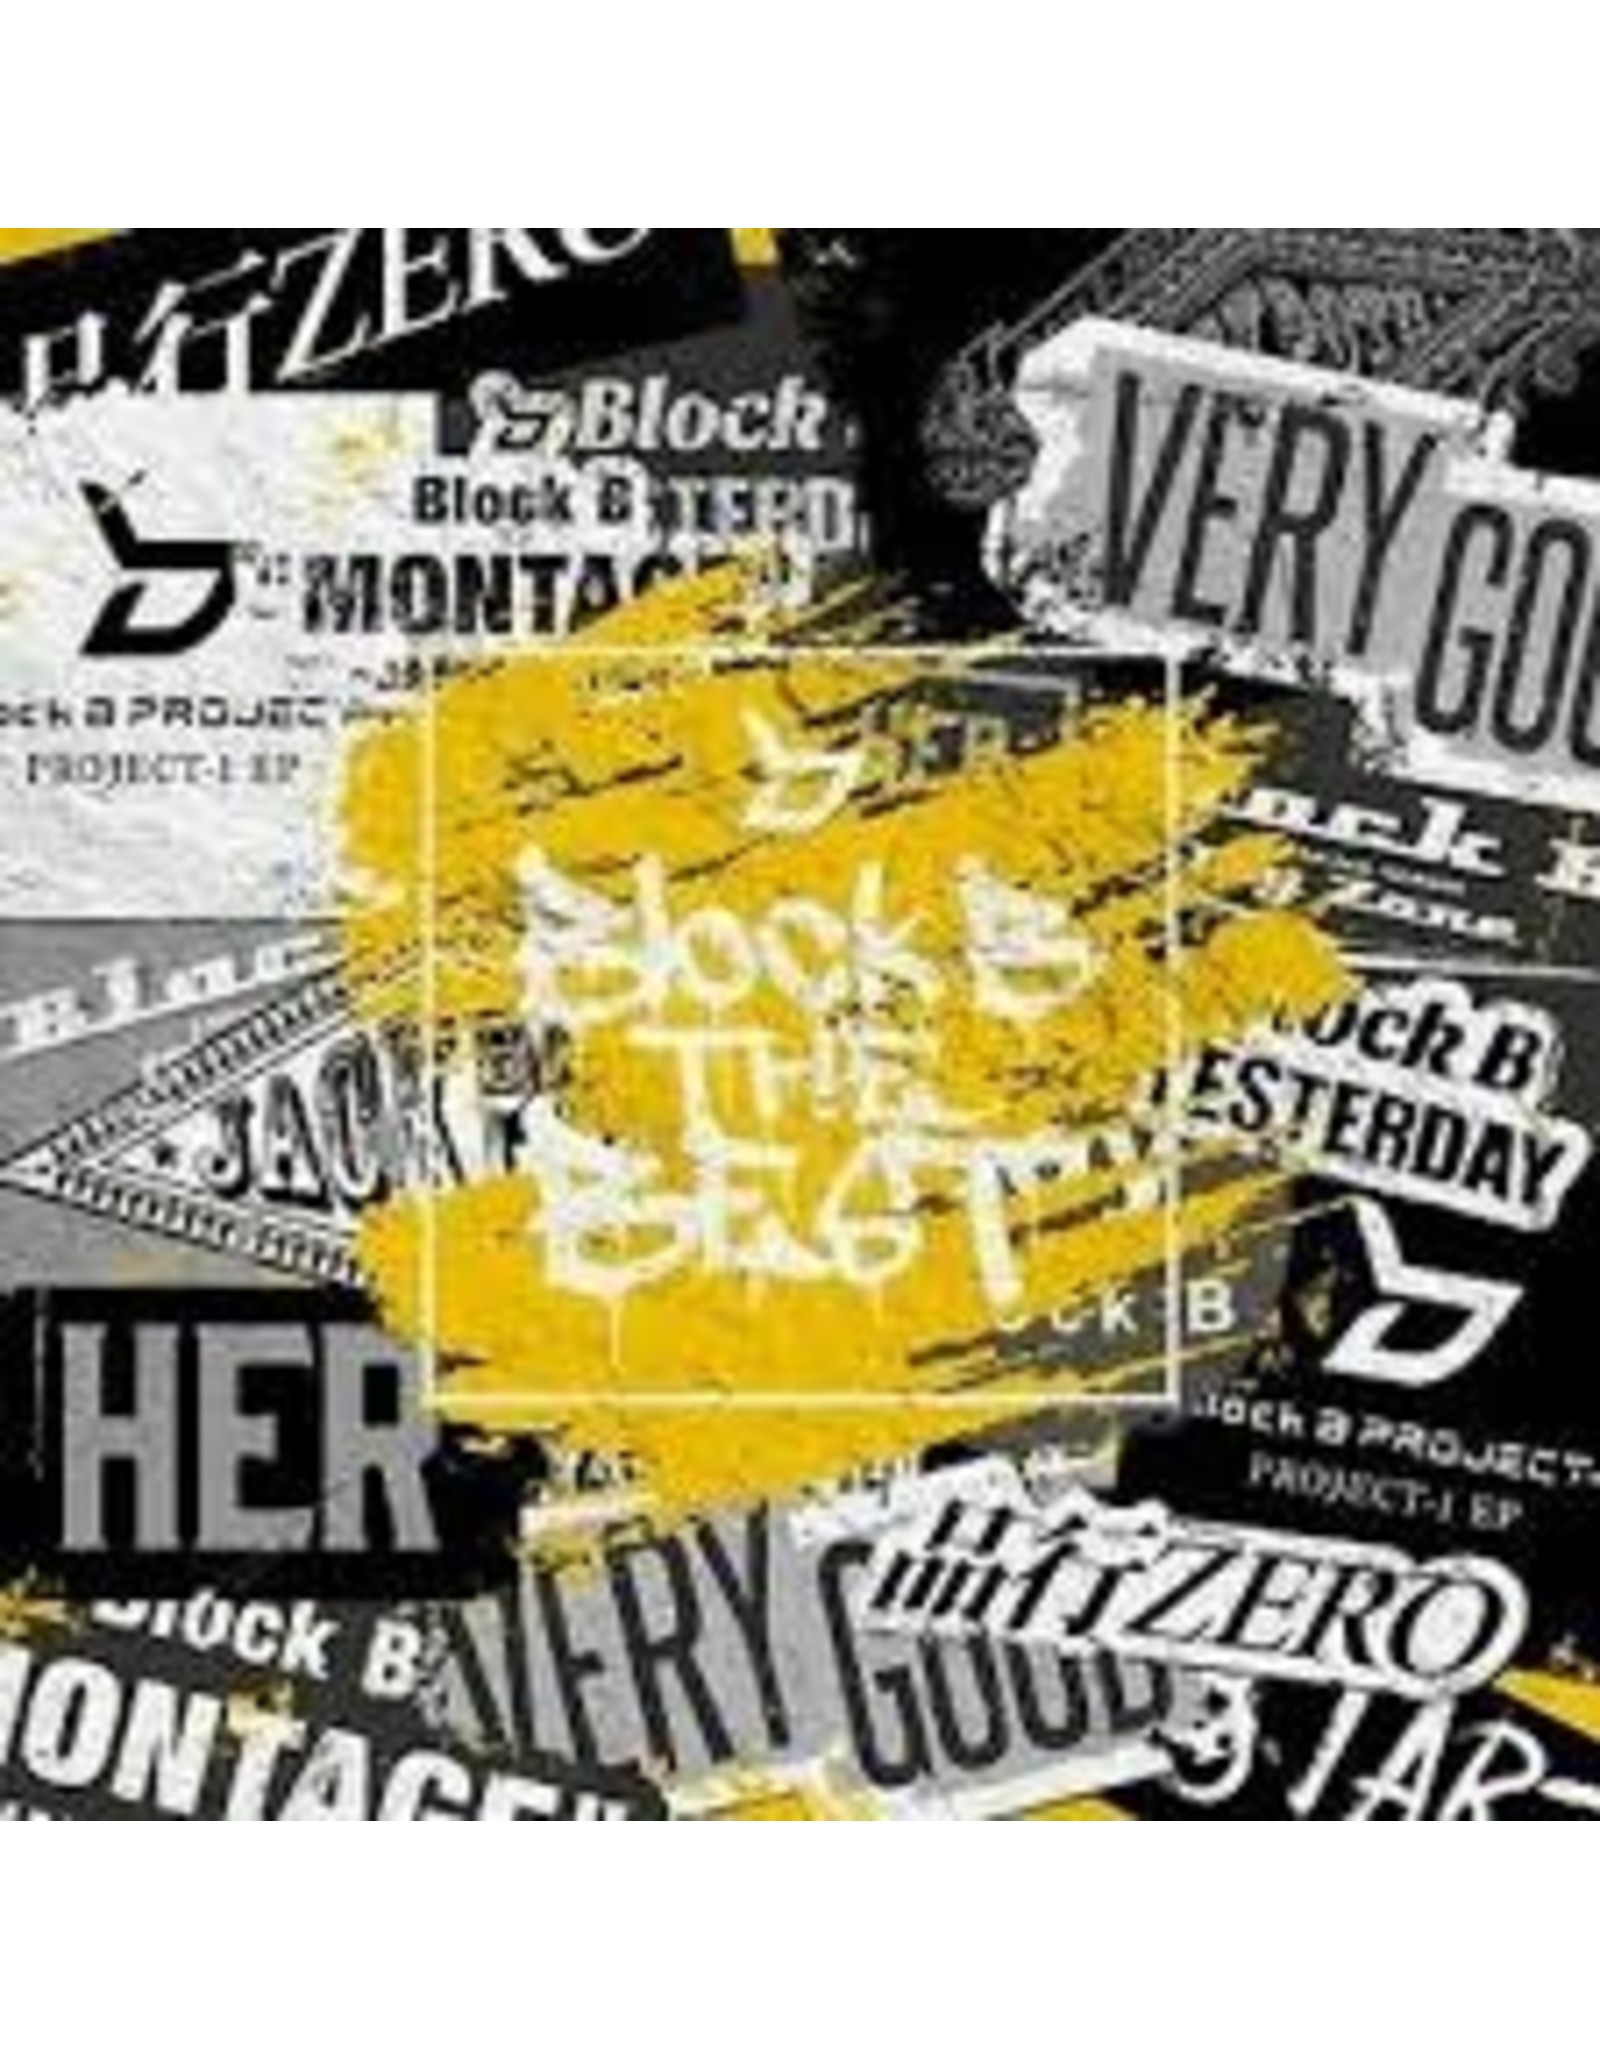 BLOCK B THE BEAT